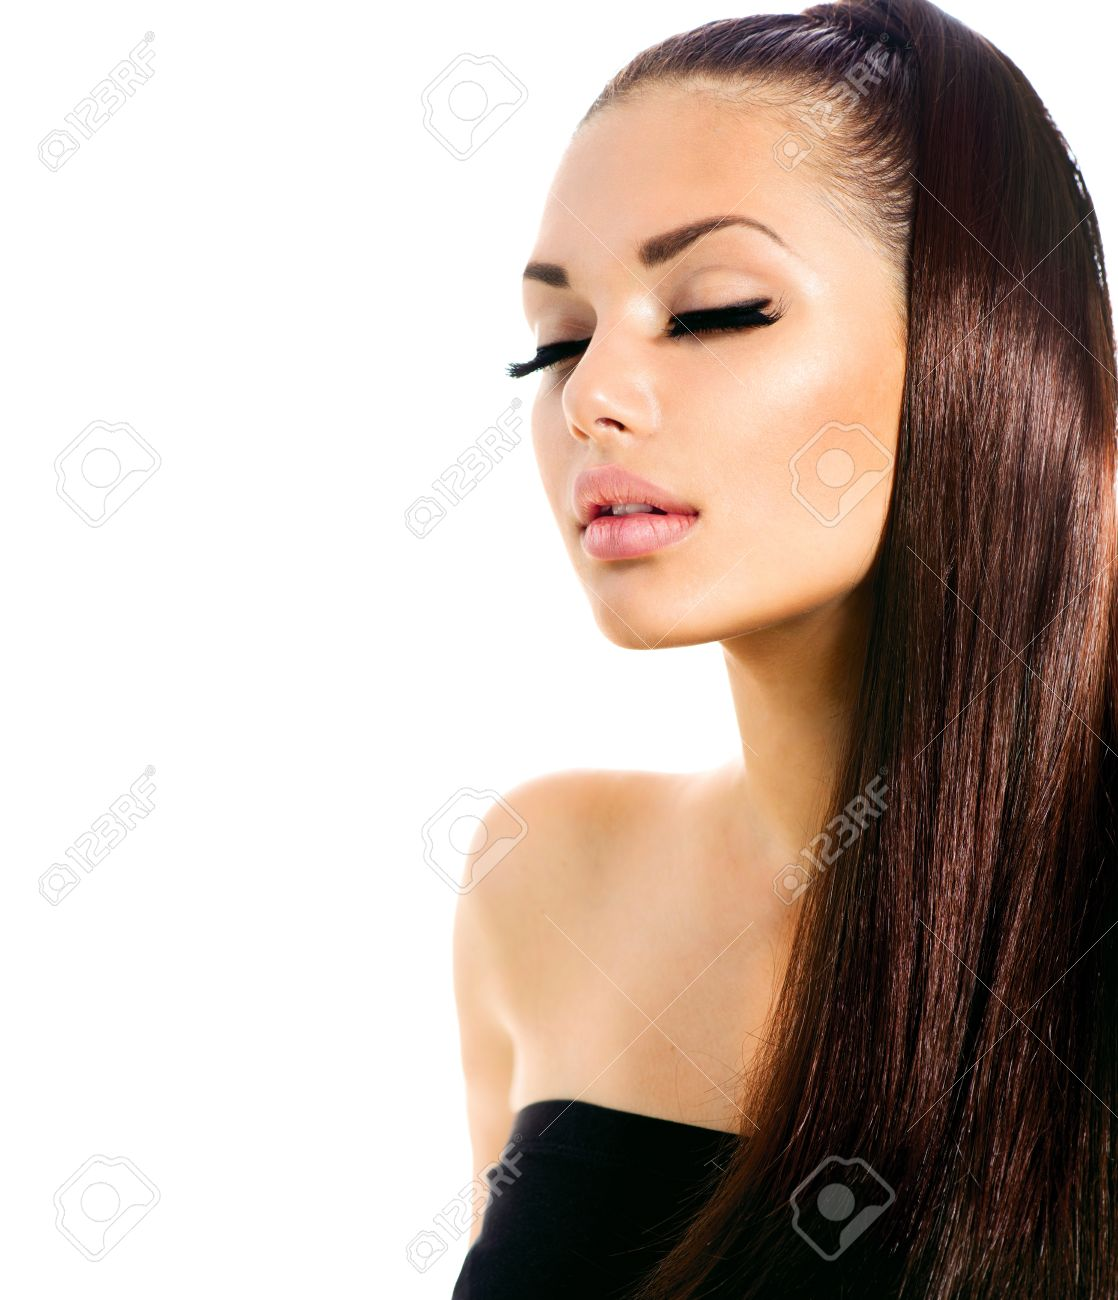 Beauty Fashion Model Girl with Long Healthy Hair Stock Photo - 20793569